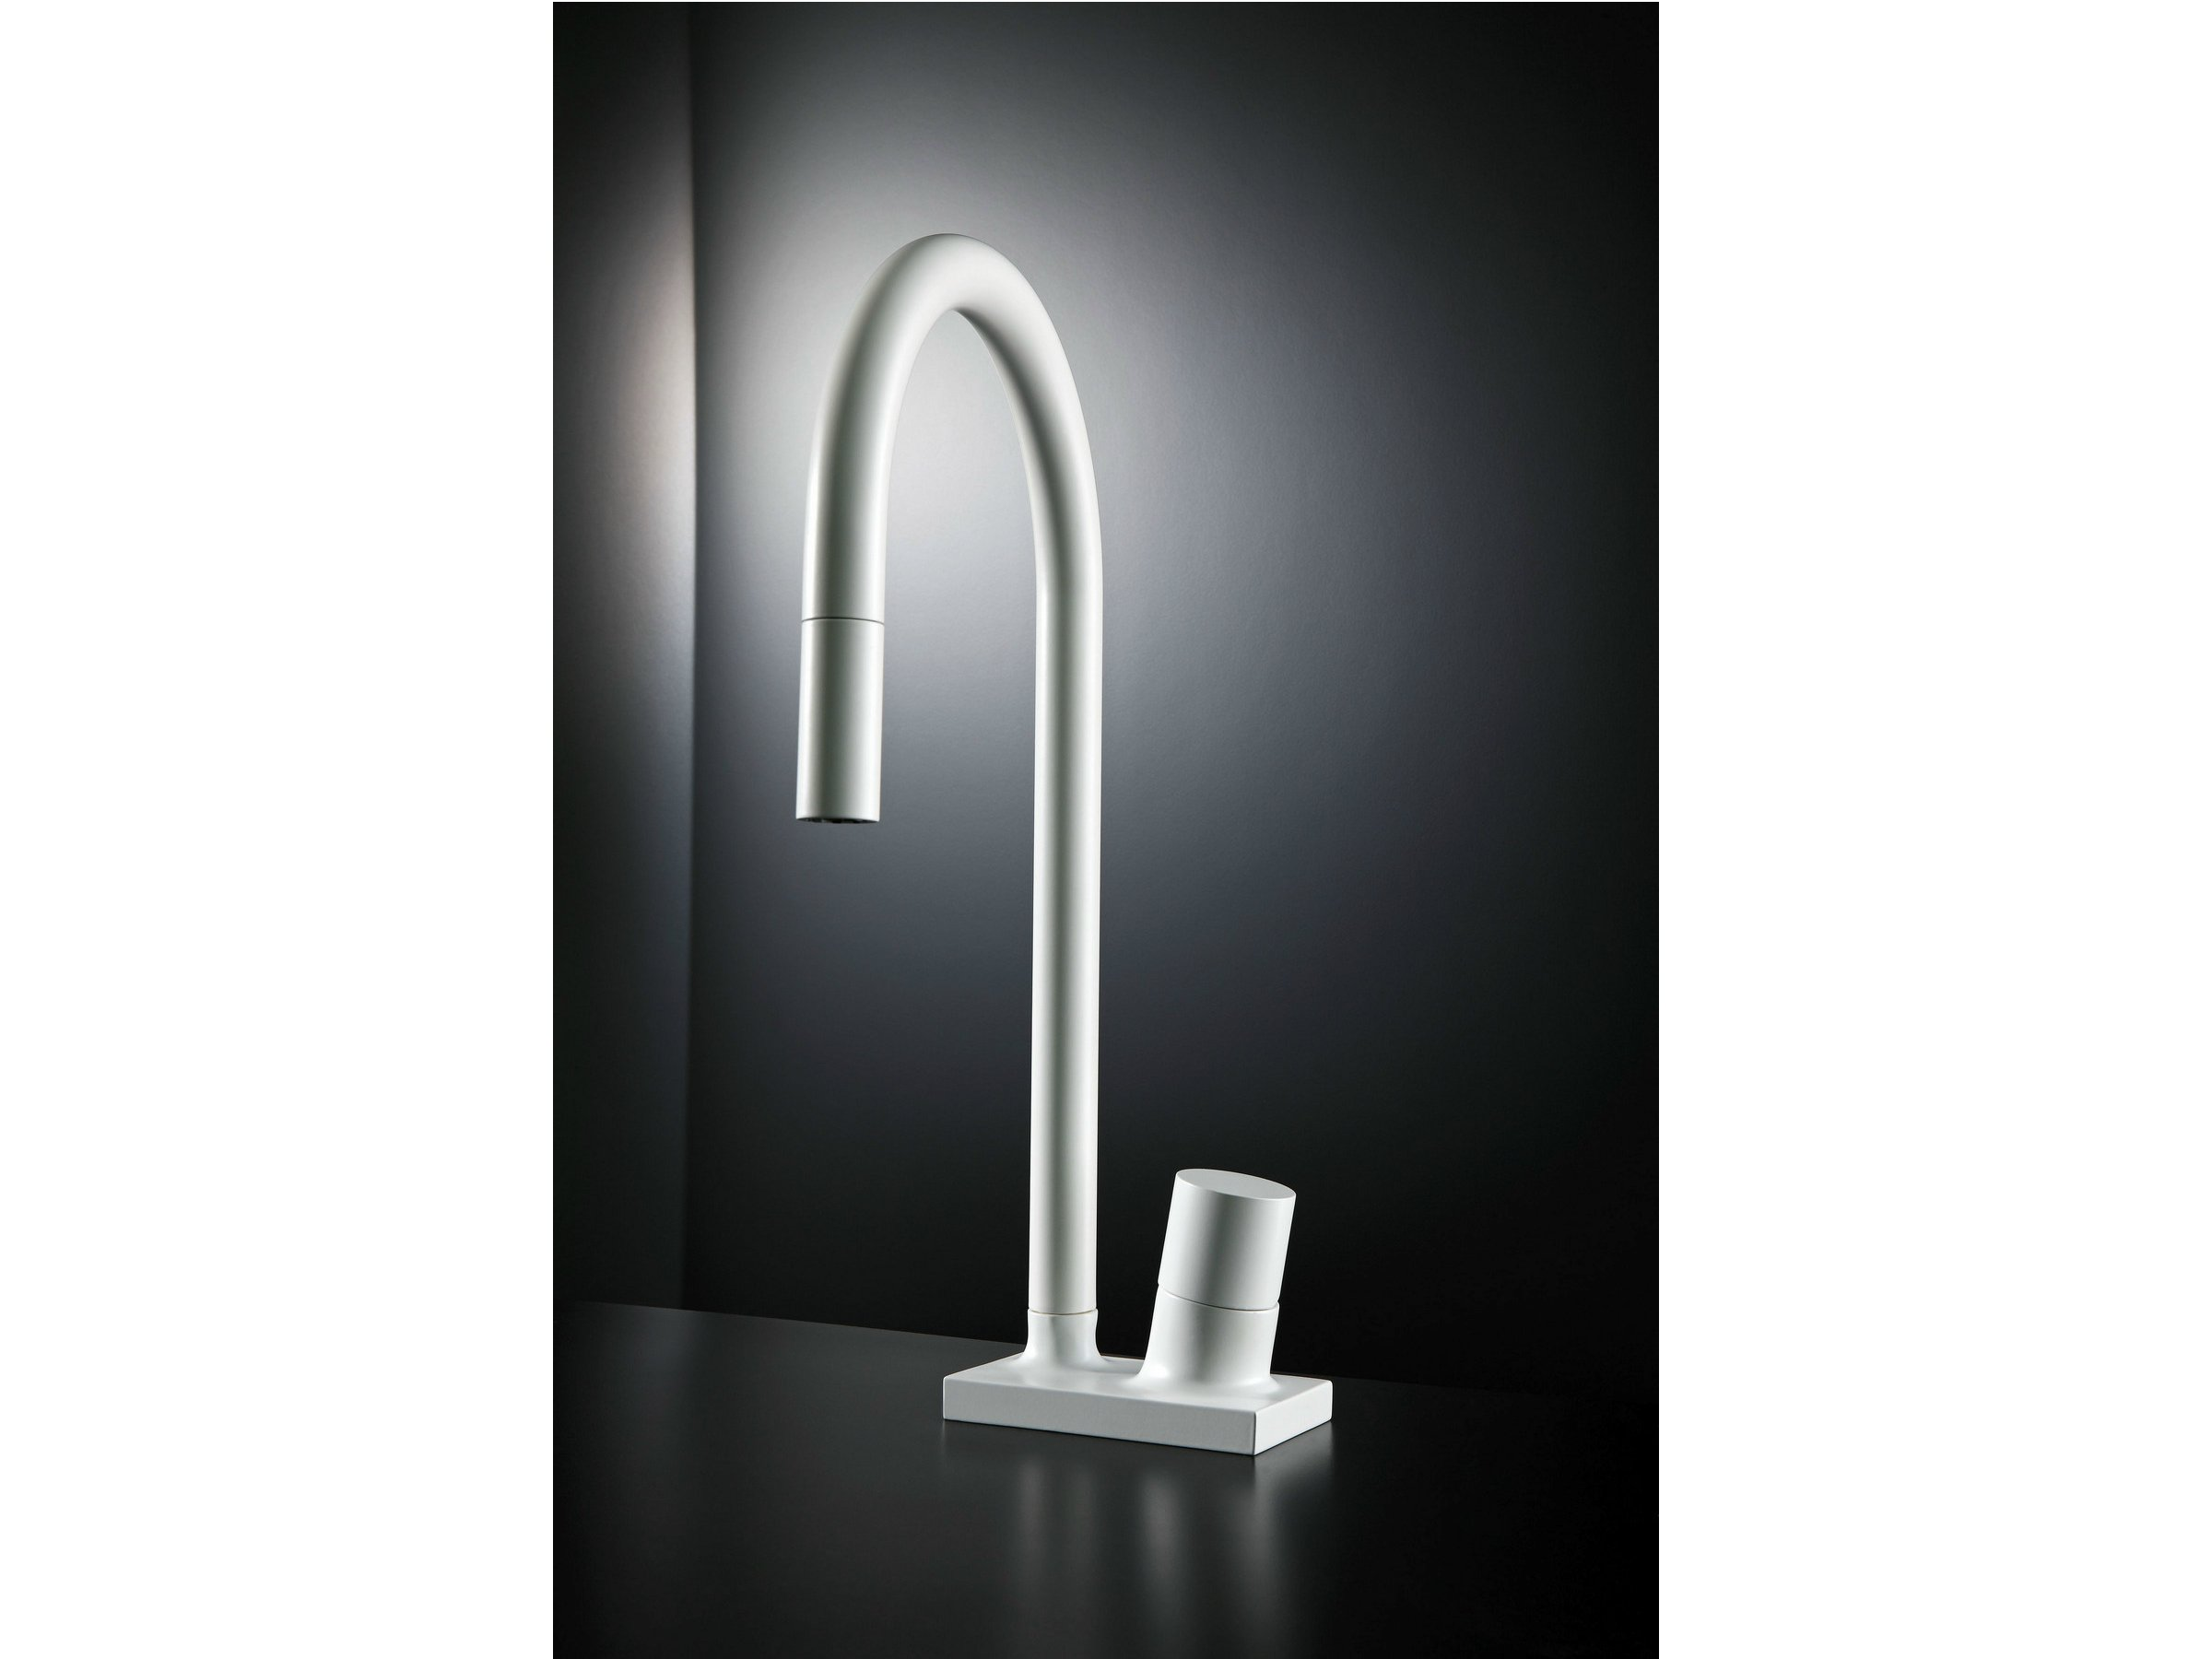 Tap Designs For Kitchens Kitchen Fima Carlo Frattini Archiproducts